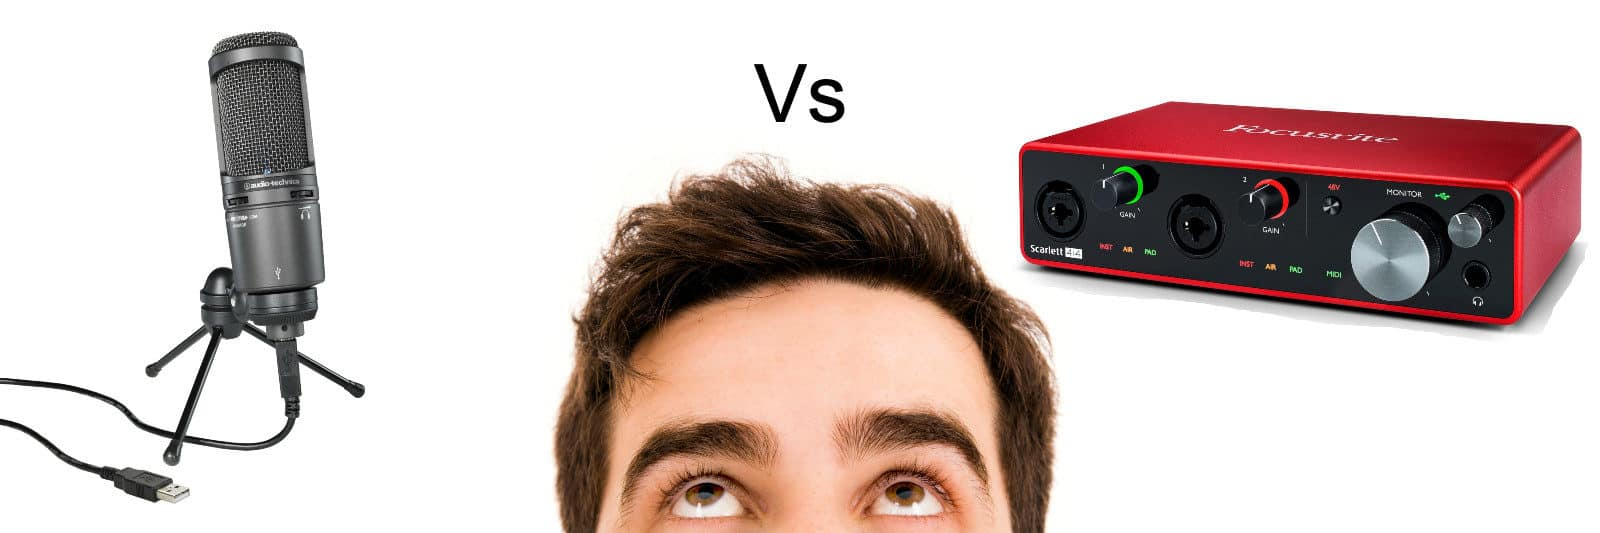 usb microphone vs audio interface banner image